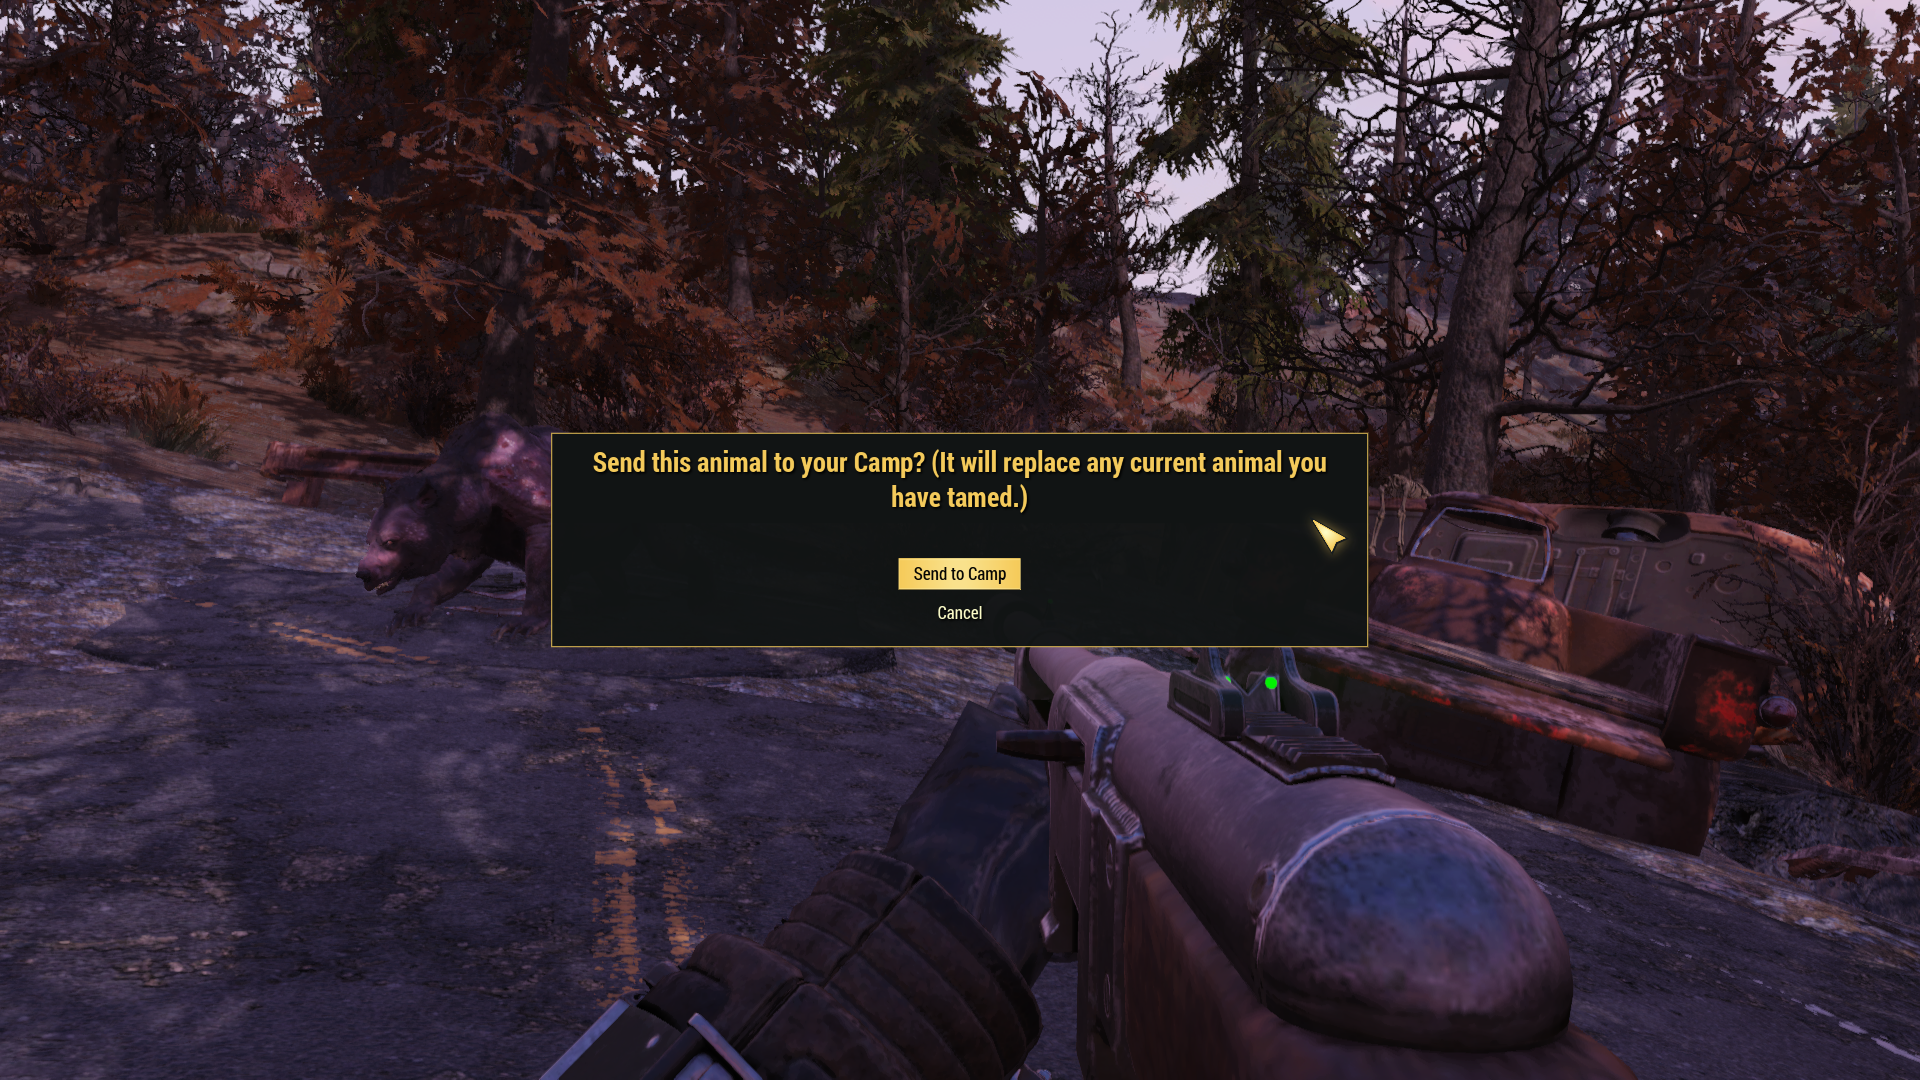 There's a Way to Tame Animals, or at Least Yao Guai Bears, in Fallout 76